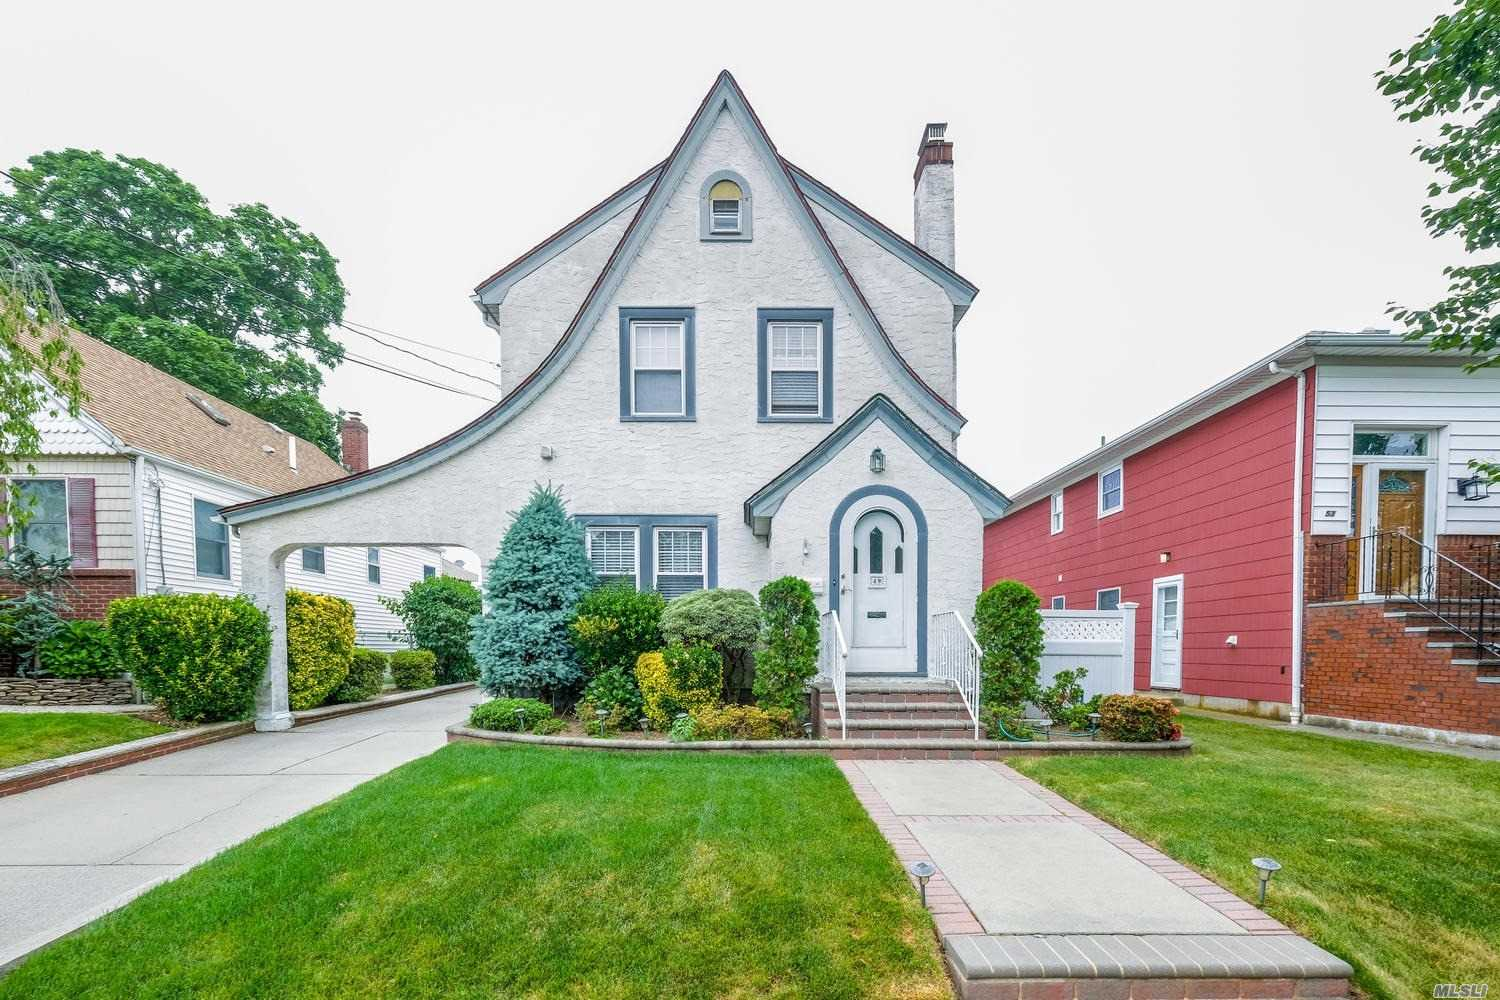 Beautiful 3 Bedroom Tudor! Eat In Kitchen With Beautiful Granite Counter Tops, Formal Dining Room With Inlaid Hardwood Floors, Full Basement With Washer Dryer. 2 Car Det Garage, Private Back Yard On A Quiet Block. Don't Miss Out On This Charming Home!